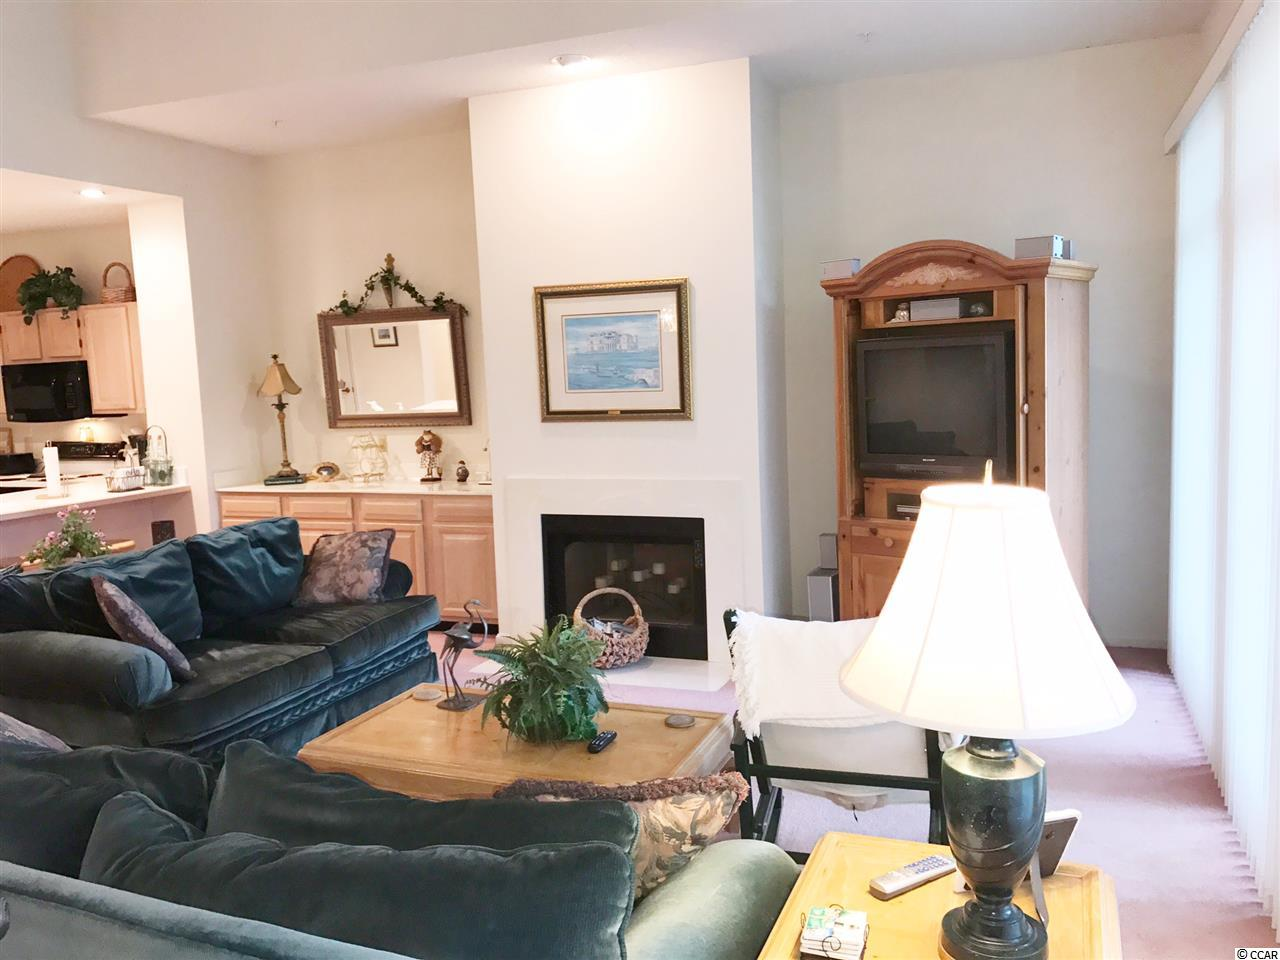 3 bedroom  TEAL LAKE VLG condo for sale